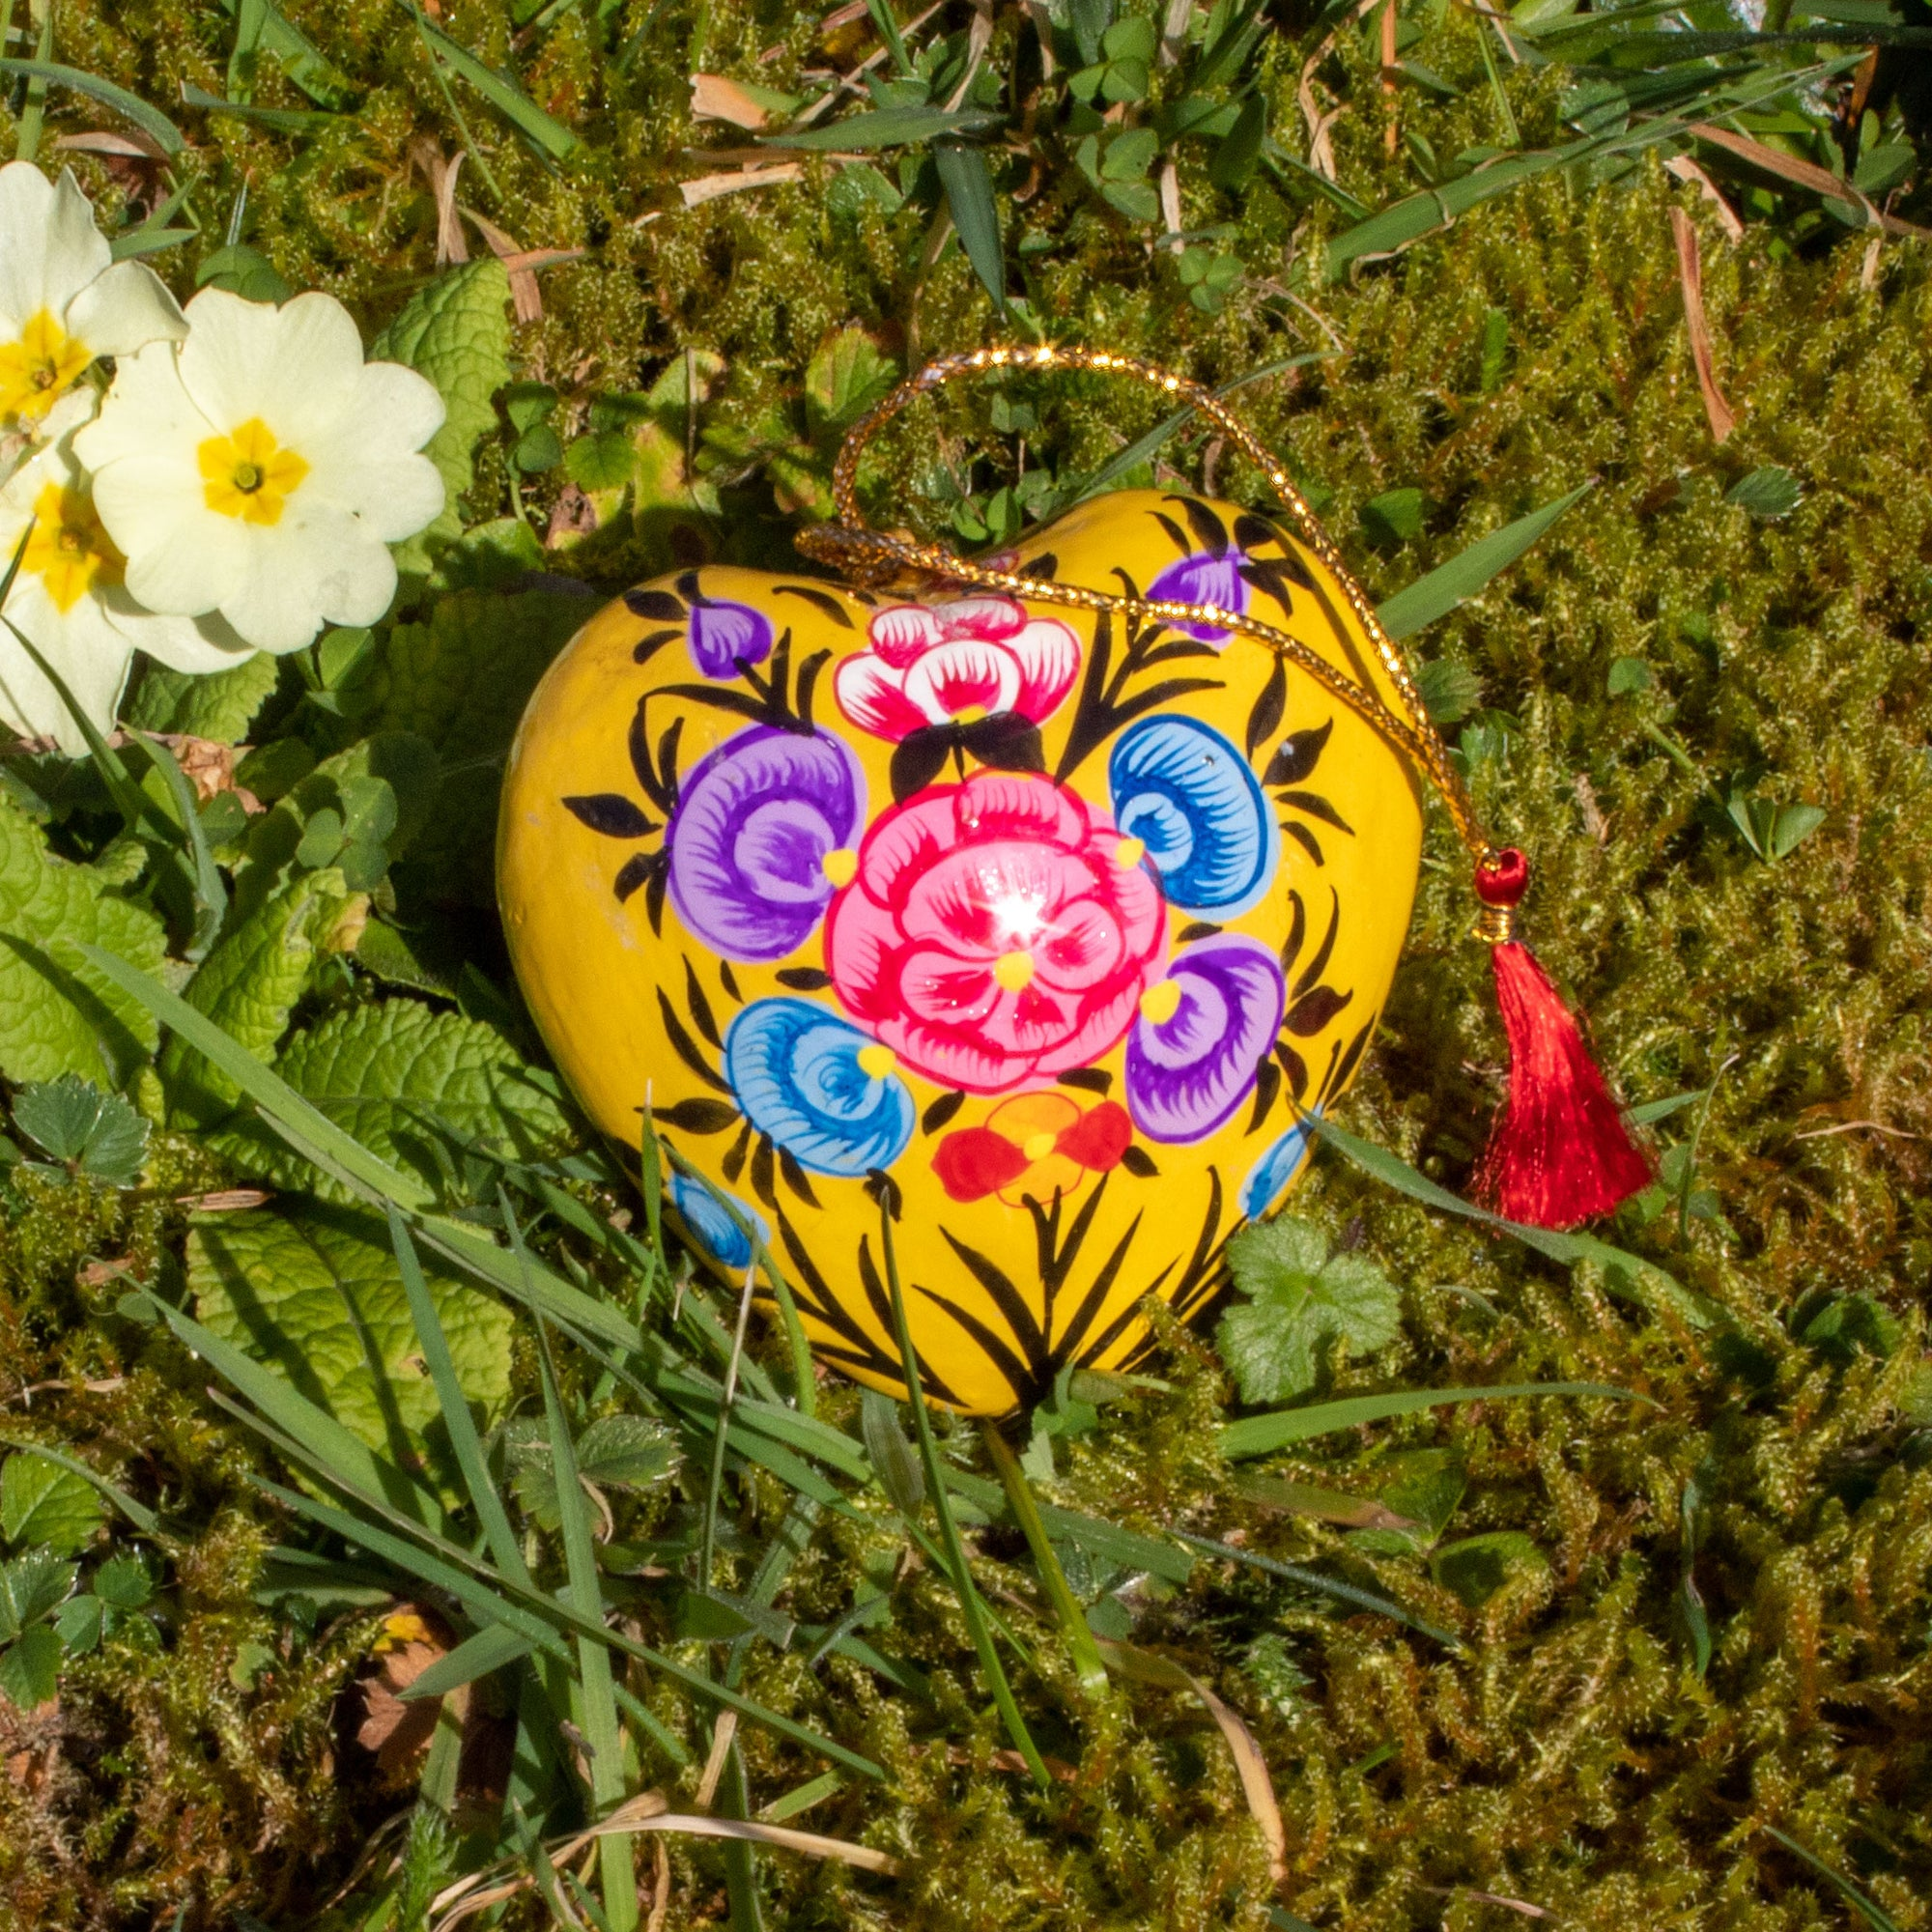 Spring/Easter Decoration - Yellow Heart With Painted Flowers | Decoration - The Naughty Shrew